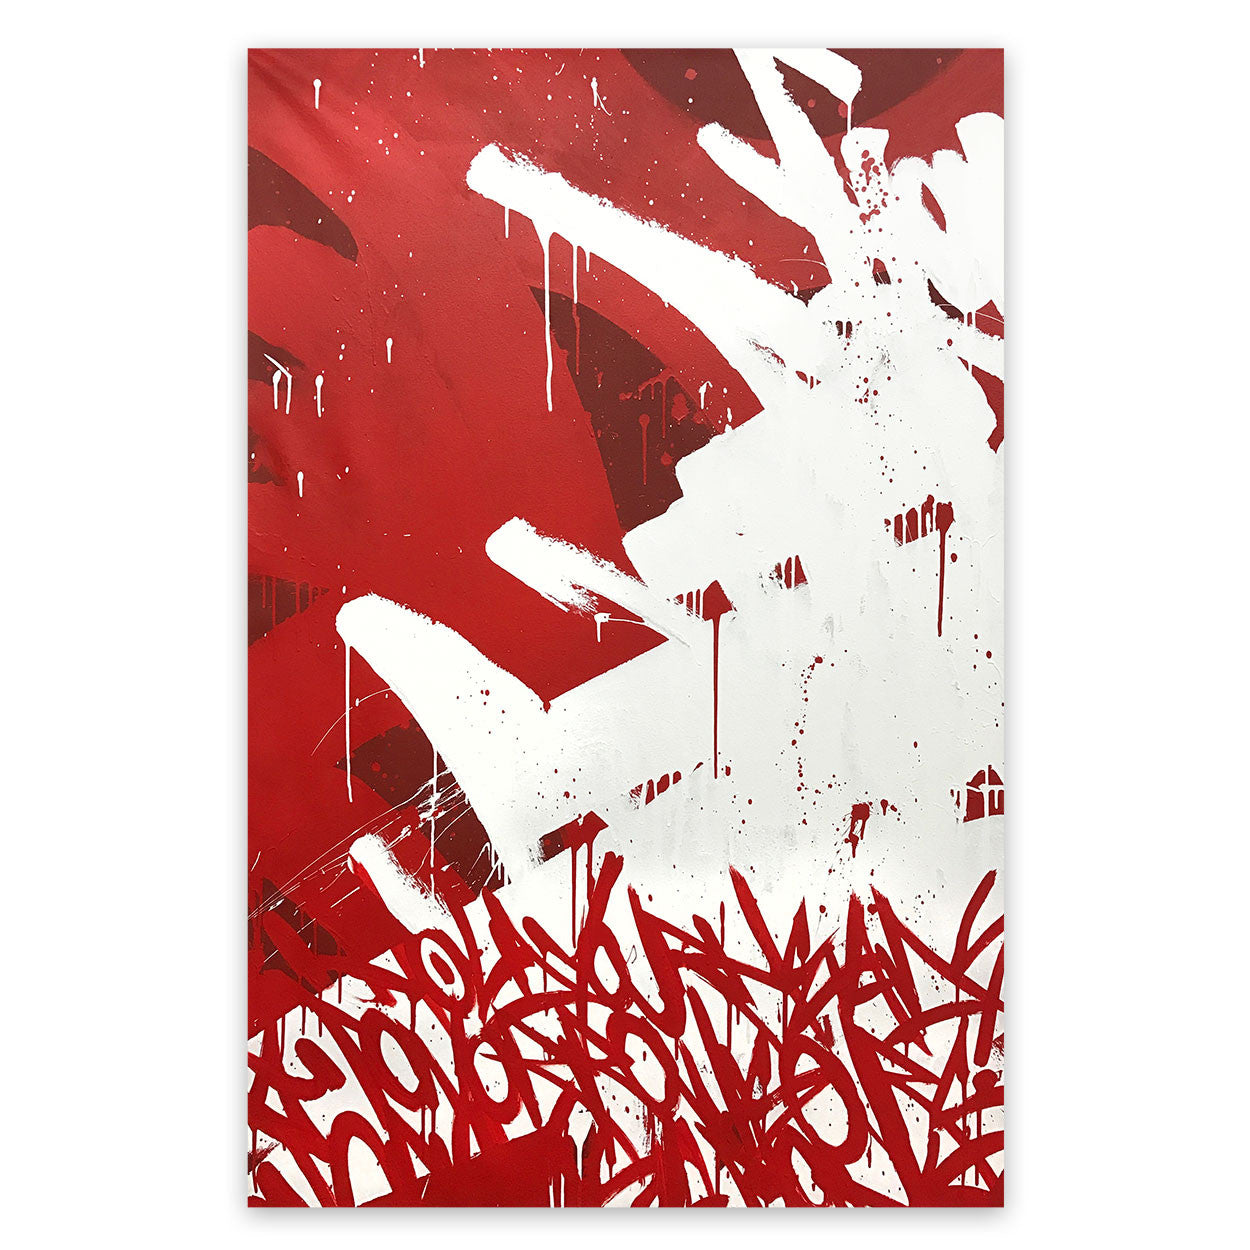 Red and white, street art - graffiti - music influenced abstract art painting by urban artist Bisco Smith.